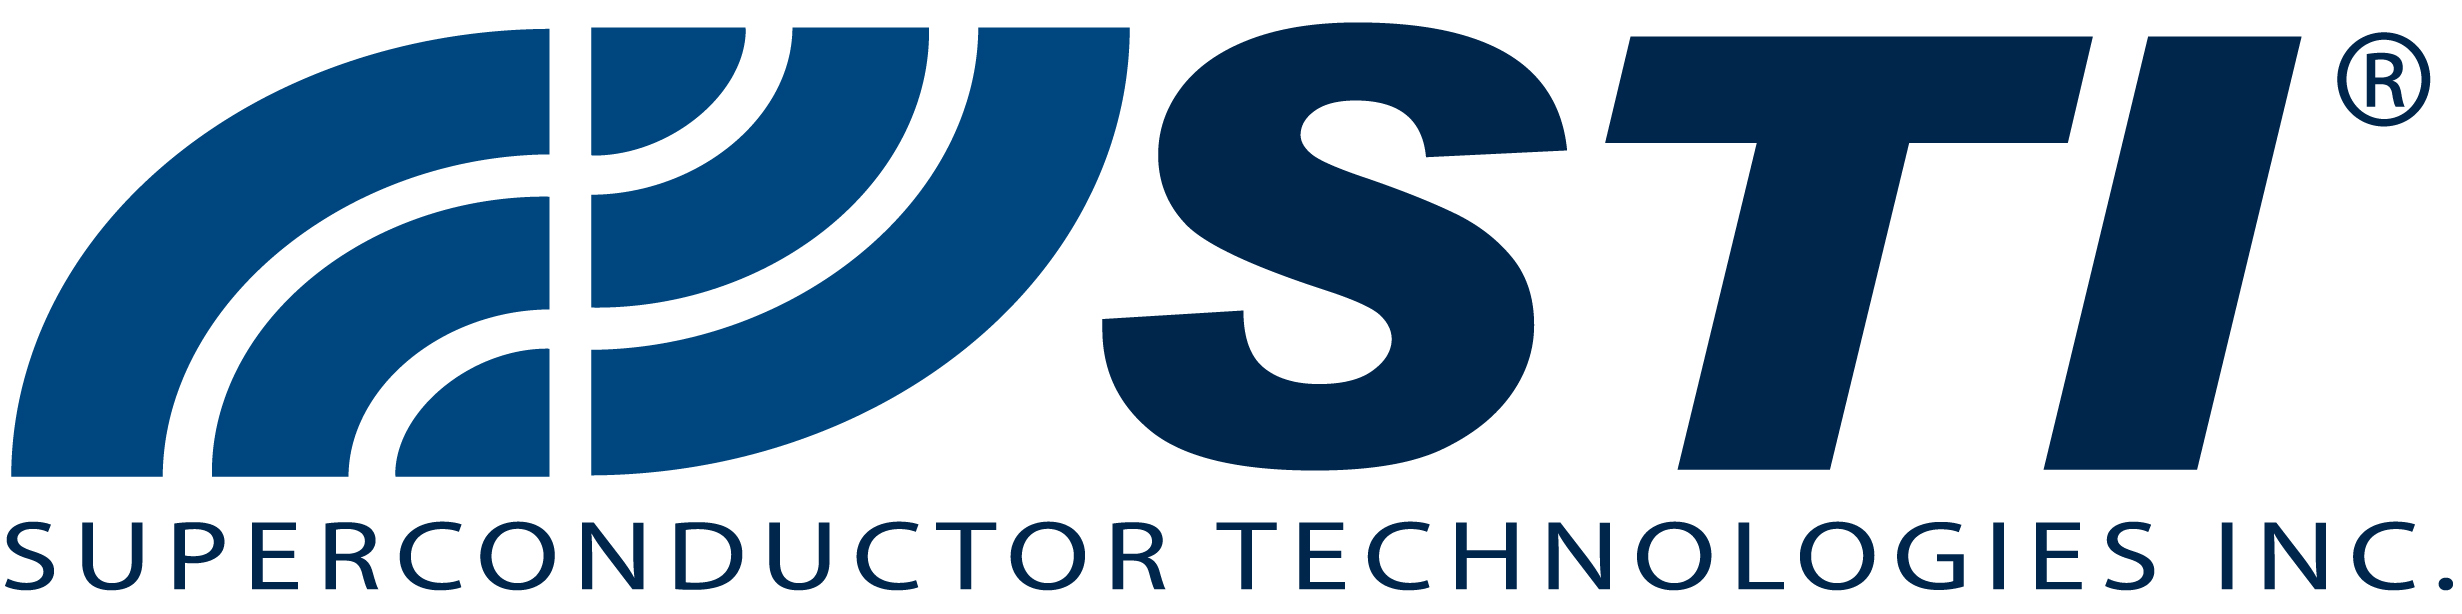 Superconductor Technologies Inc. Logo